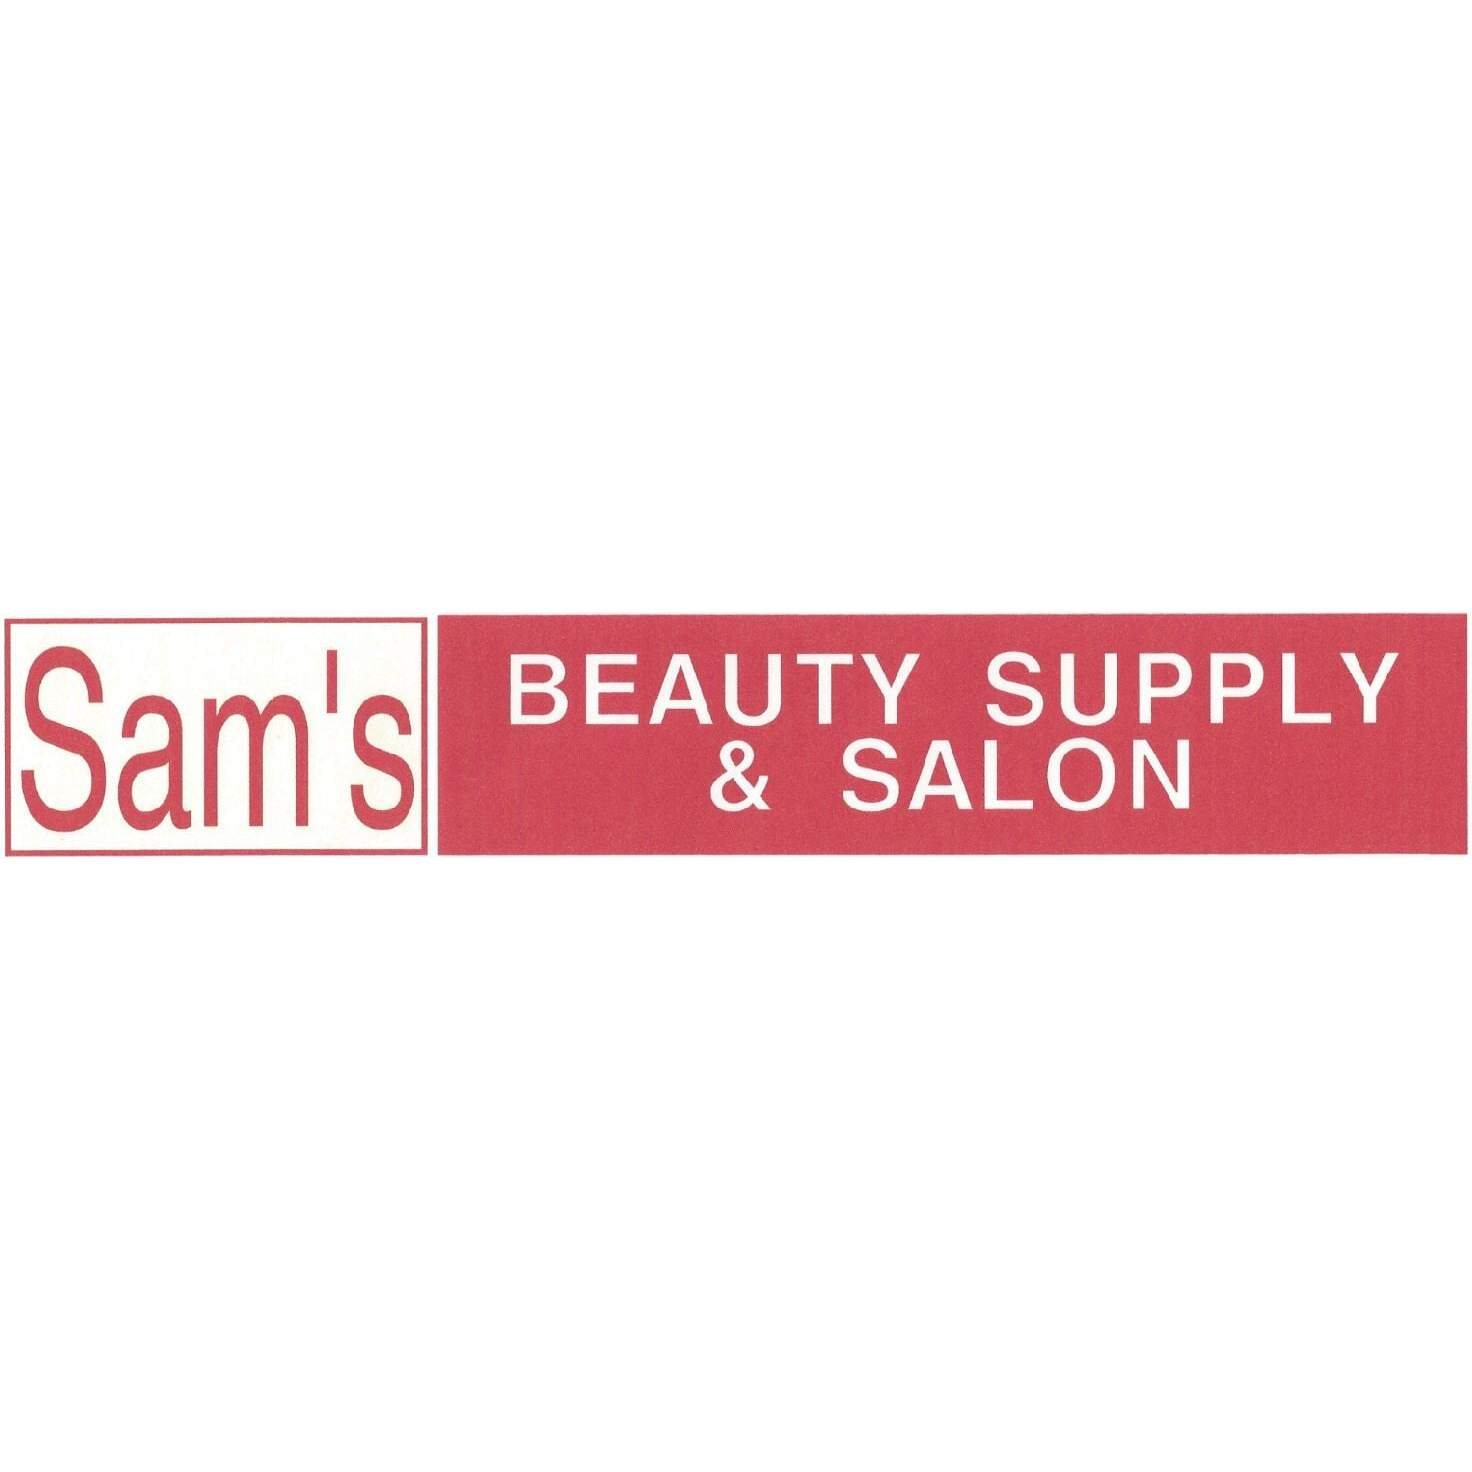 Sam 39 s beauty supply salon grass valley ca company for Adazl salon and beauty supply